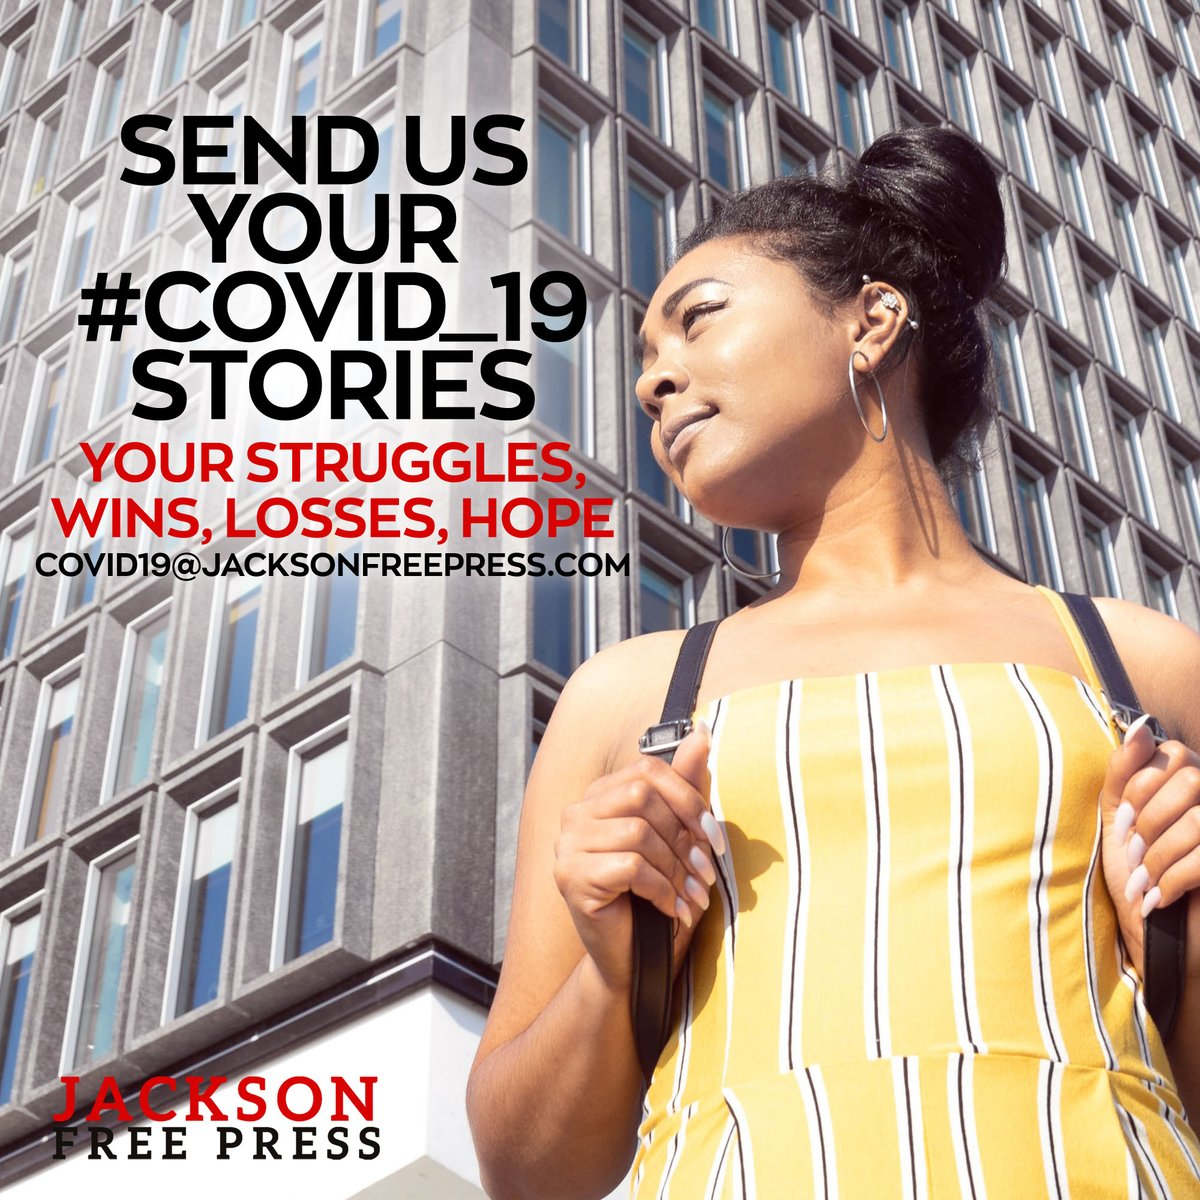 We'd like to know your #Covid19 stories. Email us at COVID19@JacksonFreePress.com. JFP has you covered. <br>http://pic.twitter.com/THIr9fcY9m